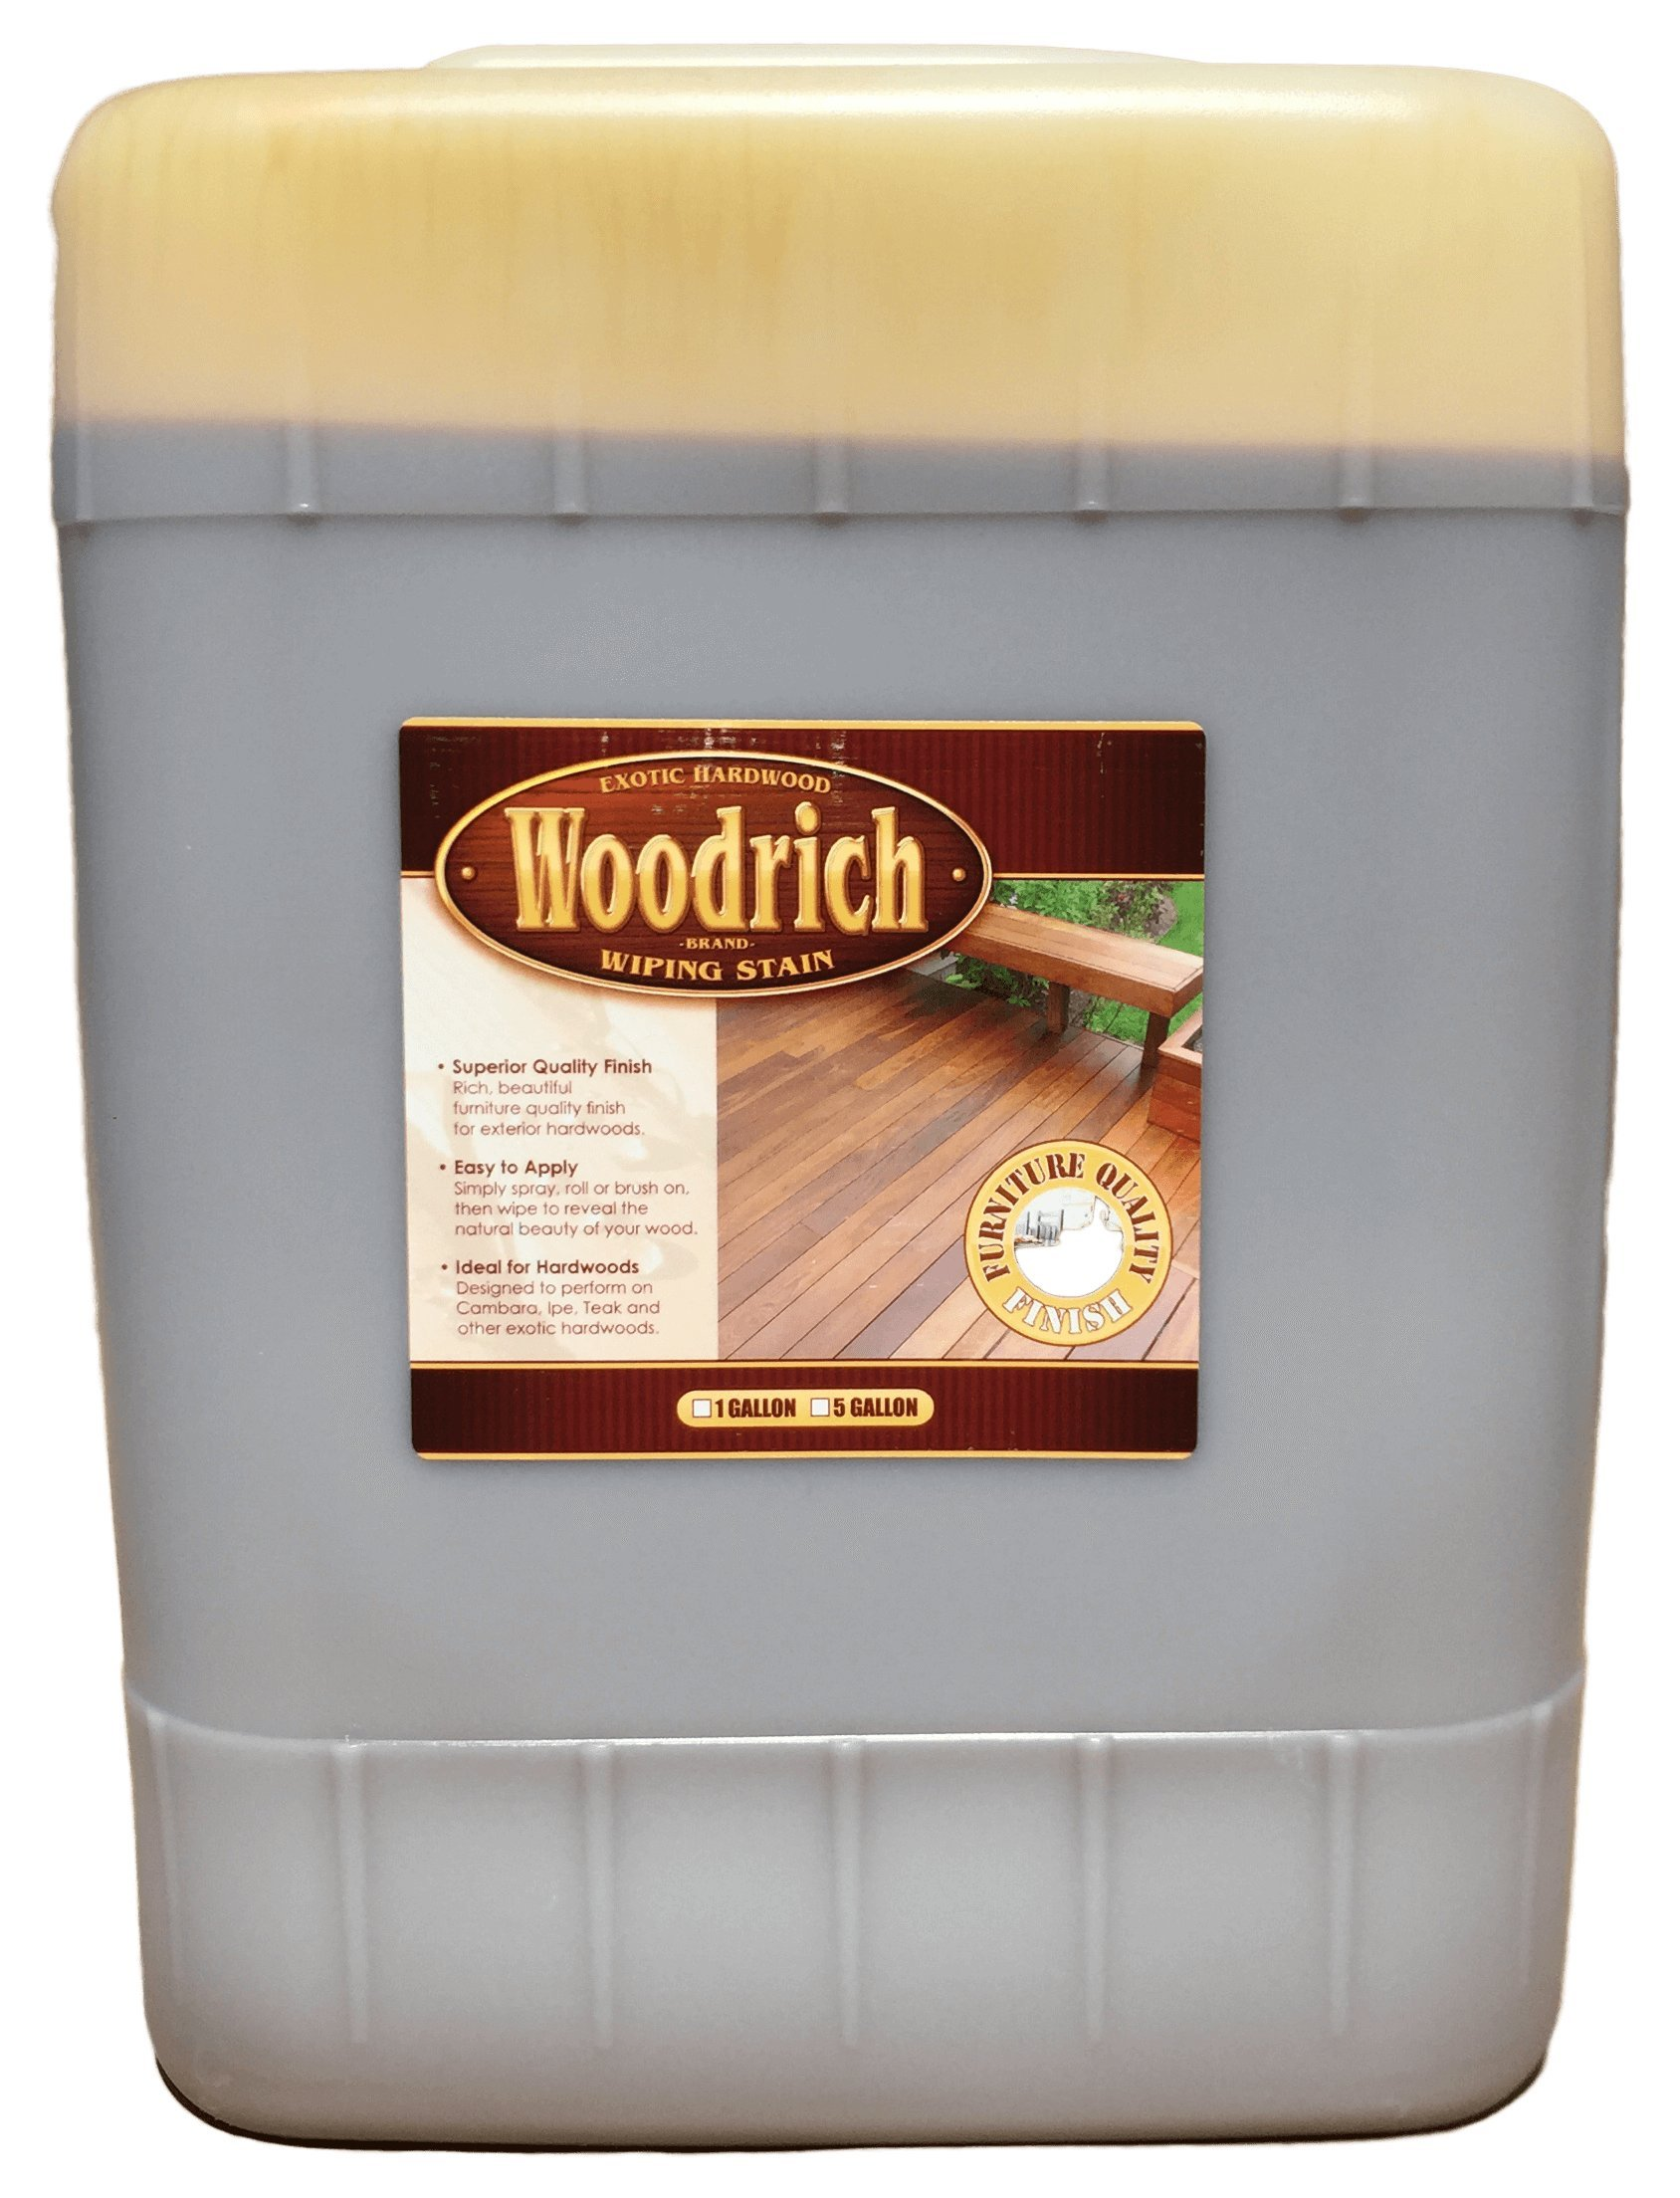 Hardwood Wiping Wood Deck & Fence Stain - 5 Gallon - Woodrich Brand - Great on all Exotic Hardwood like Ipe, Garapa, Teak, Mahogany, & Cambara - Covers up to 1500 Square Feet (Brown Sugar)